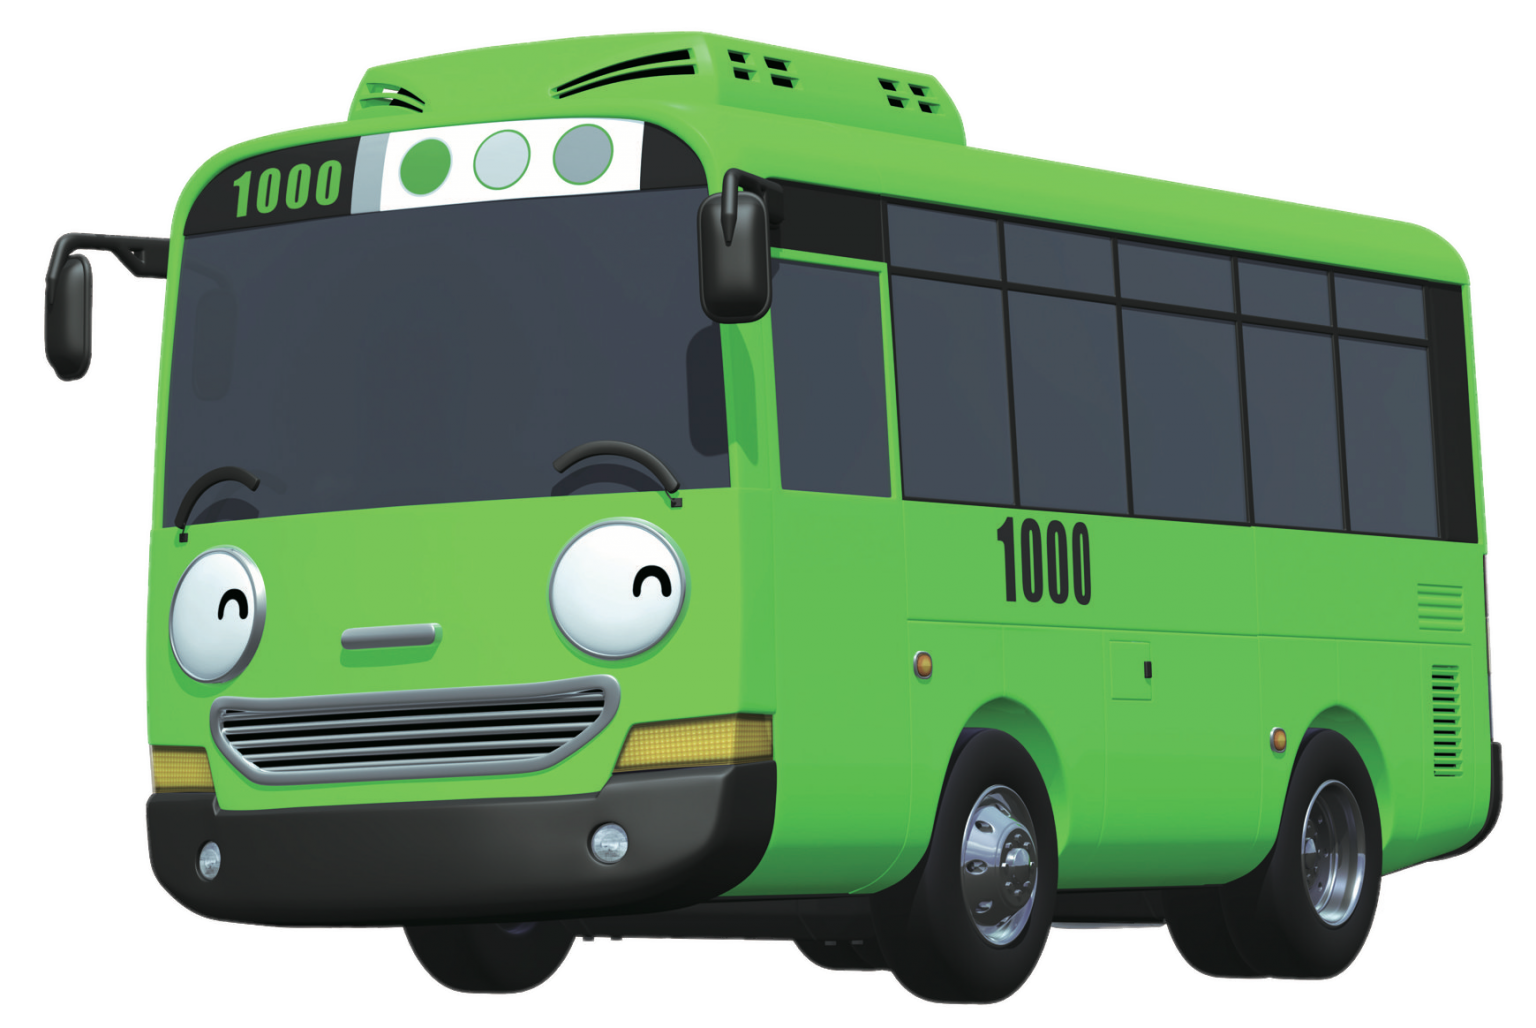 Check Out This Transparent Tayo The Little Bus Character Rogi Smiling Png Image Tayo The Little Bus Little Bus Hawaiian Party Decorations